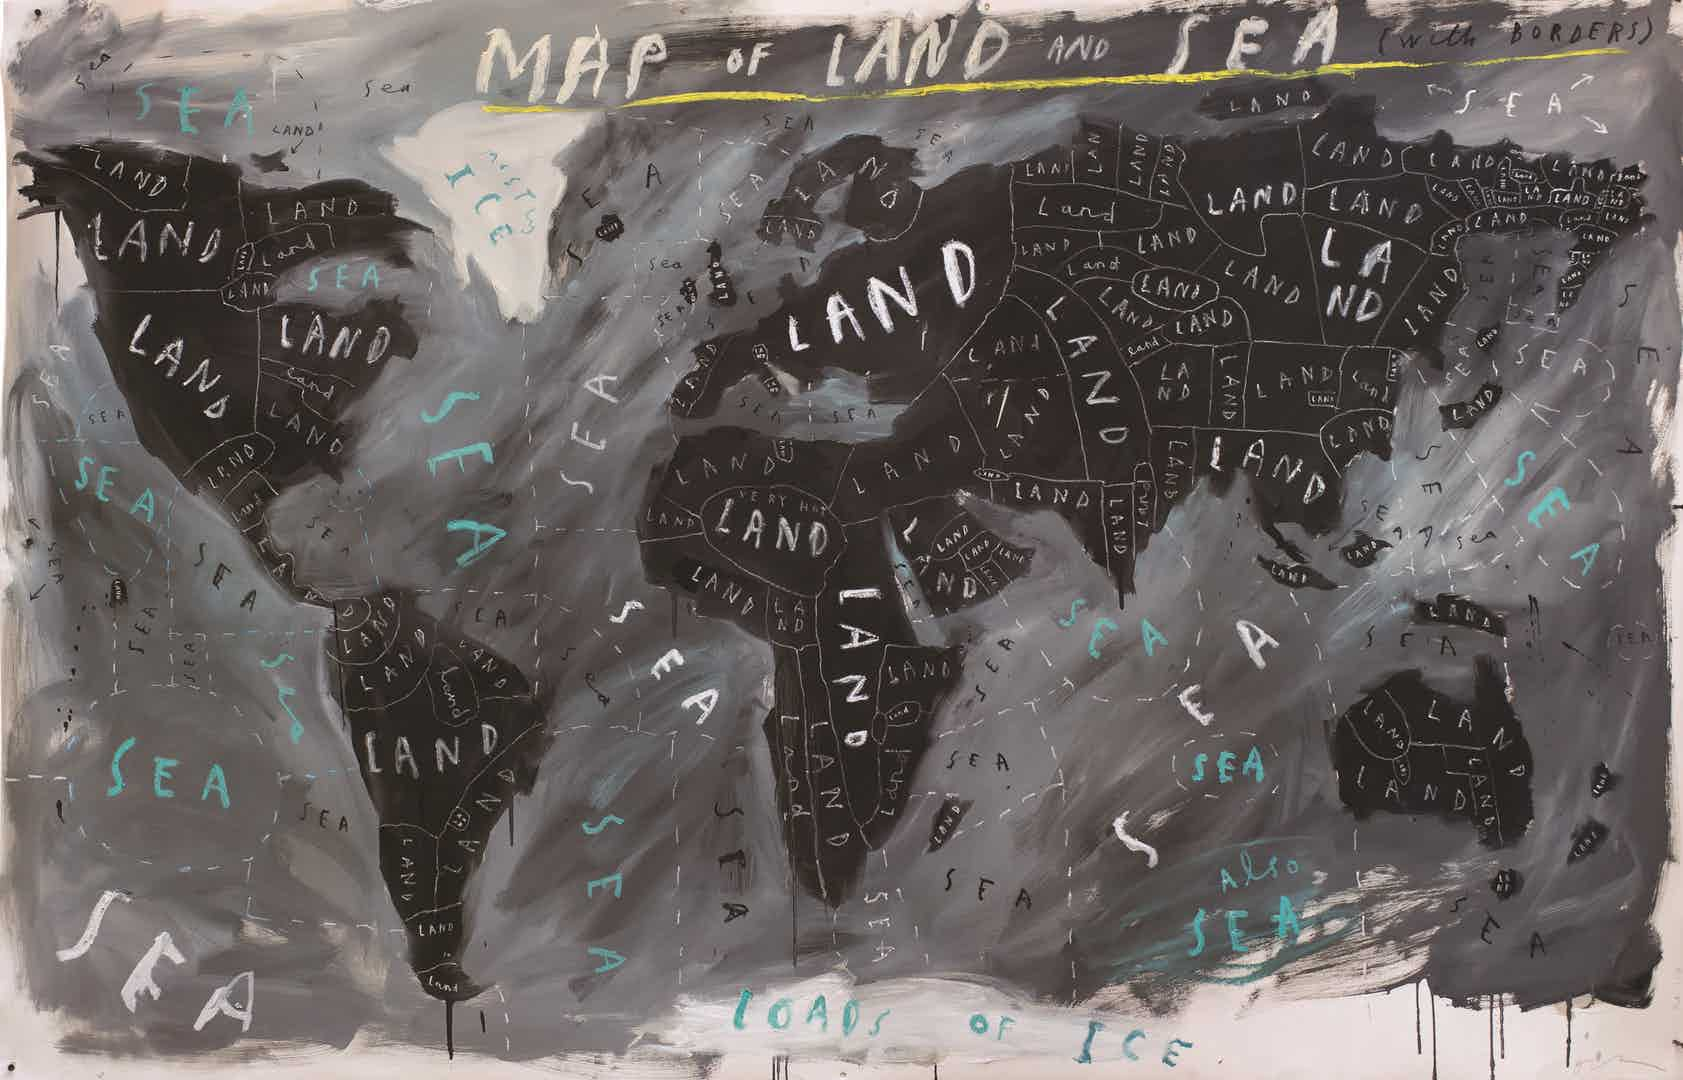 Map of Land and Sea with Borders by Oliver Jeffers